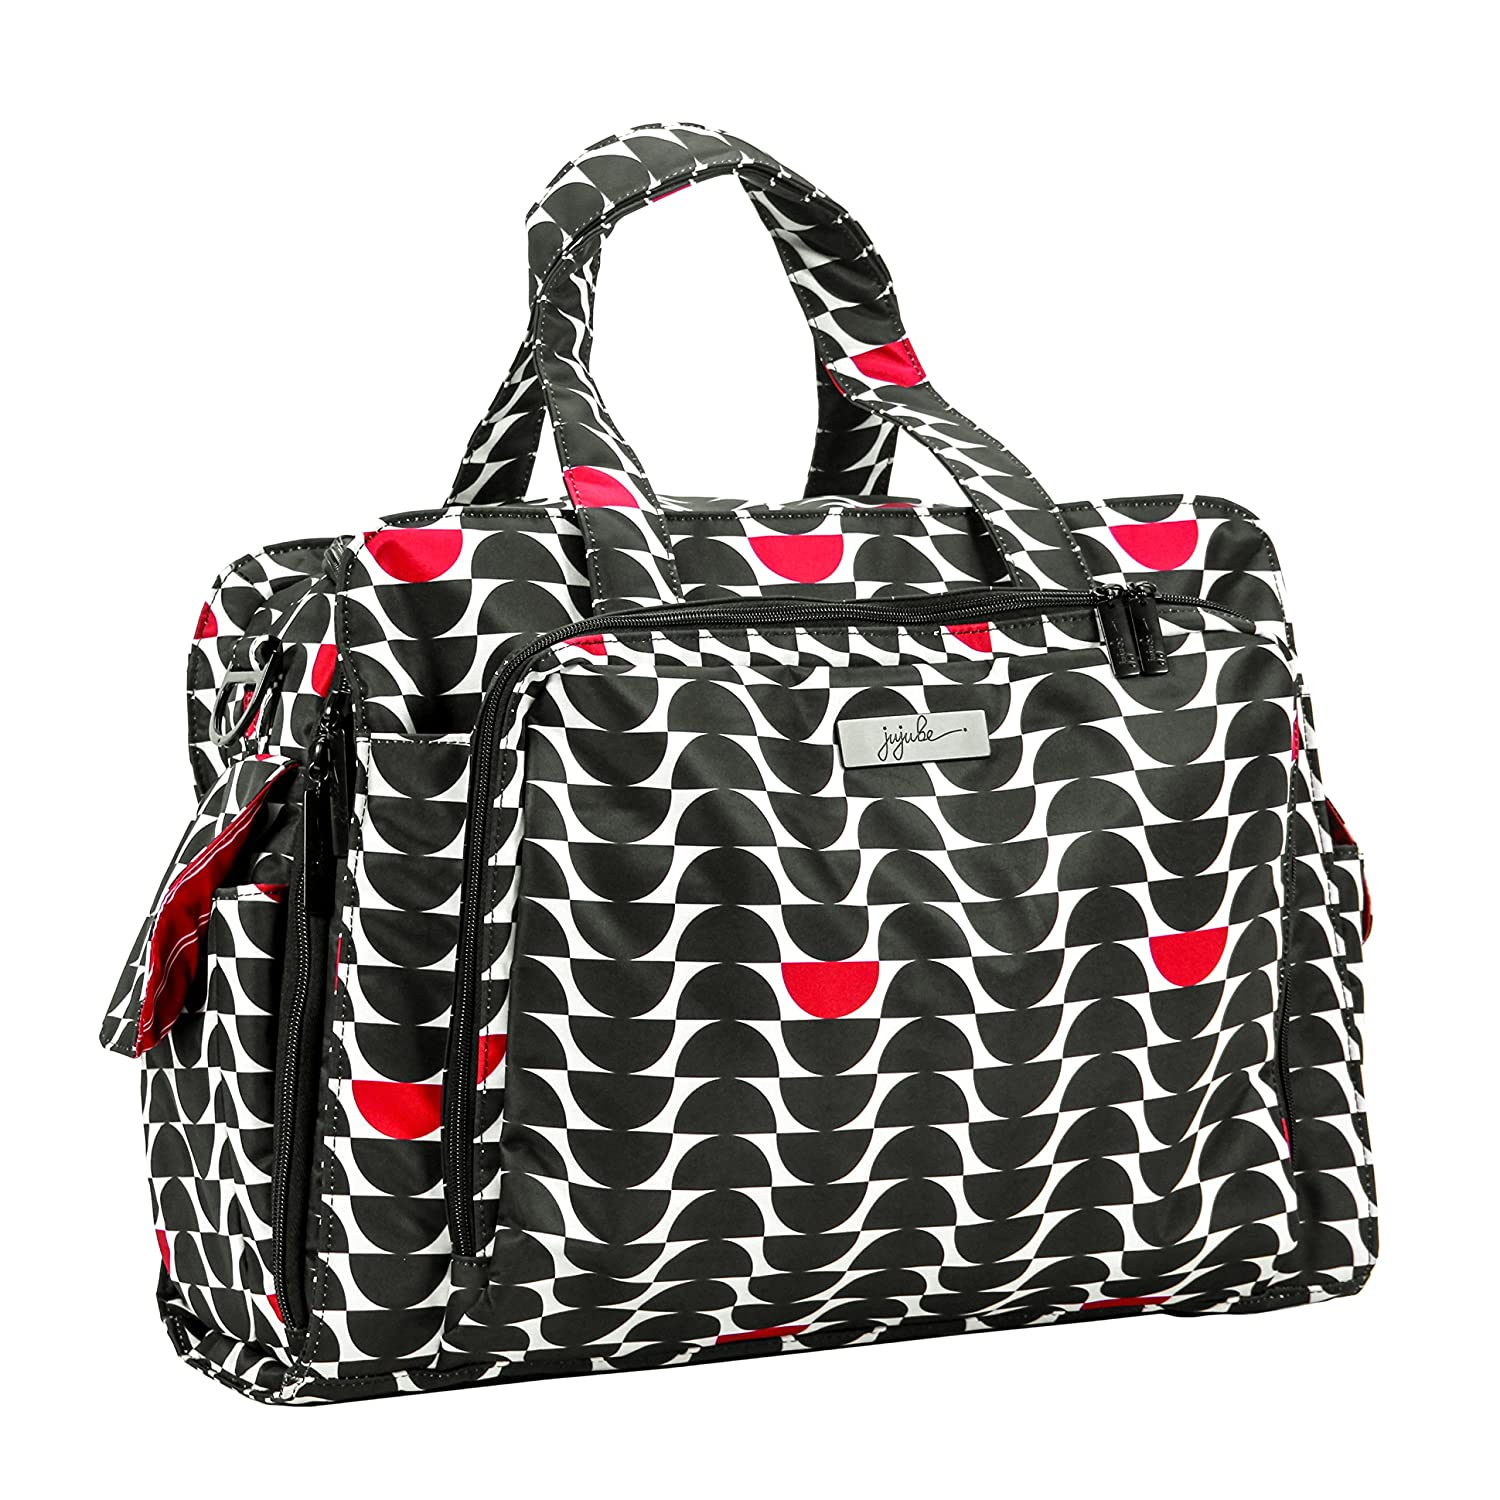 af780965beae Amazon.com : JuJuBe Be Prepared Travel Carry-on/Diaper Bag, Onyx ...